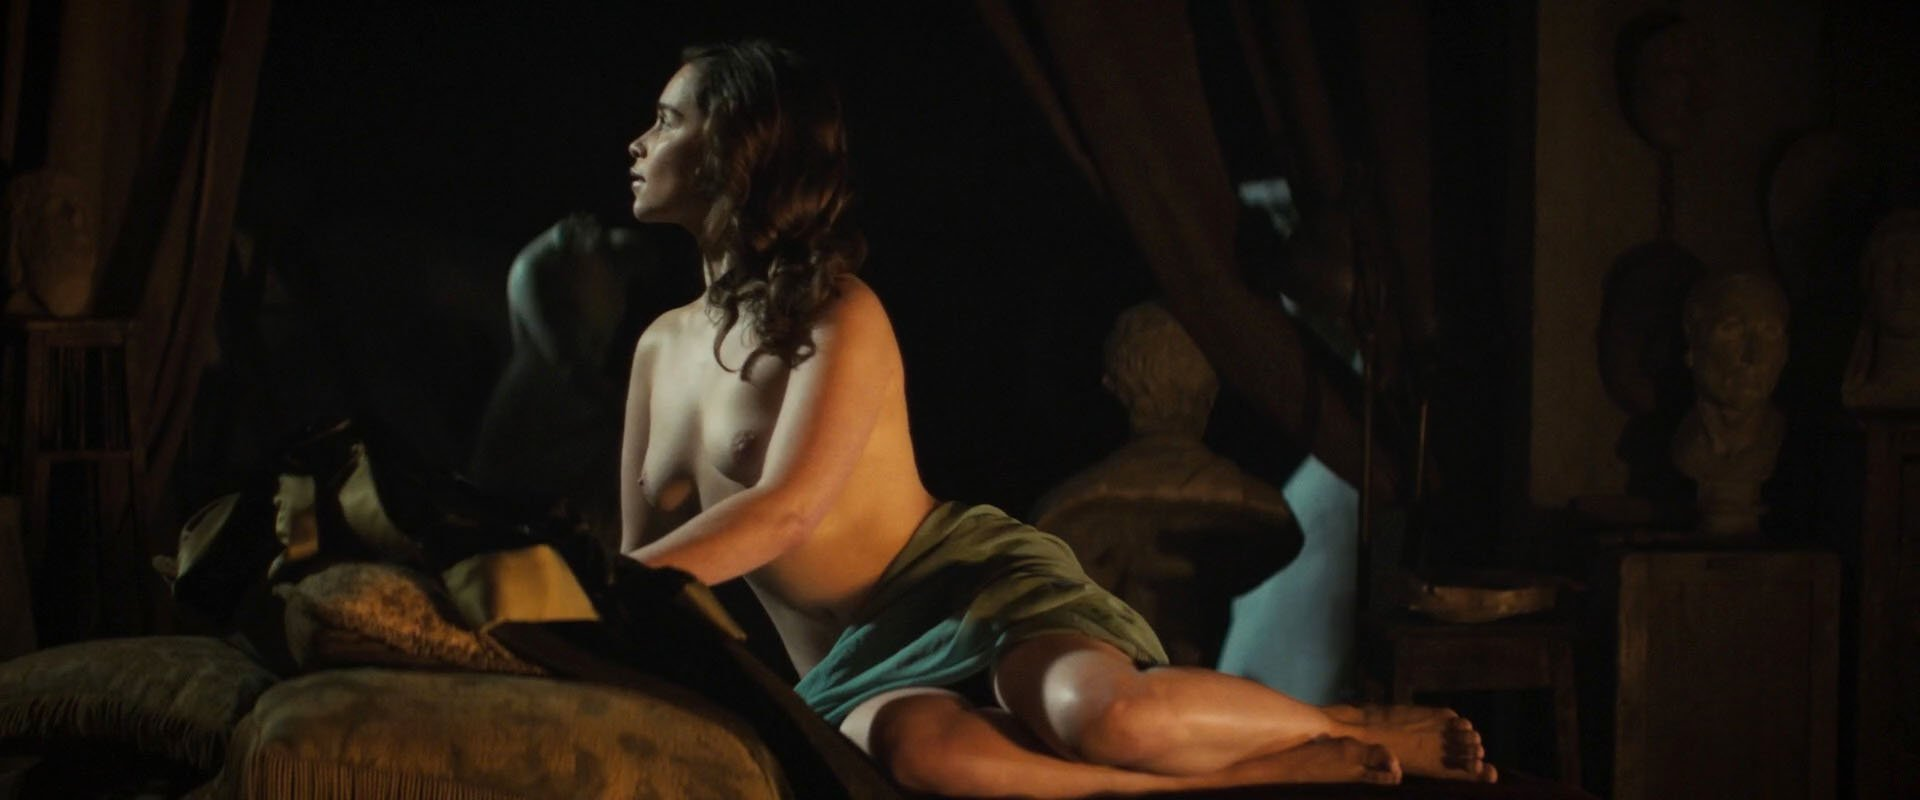 Emilia Clarke nude - Voice from the Stone (2017)